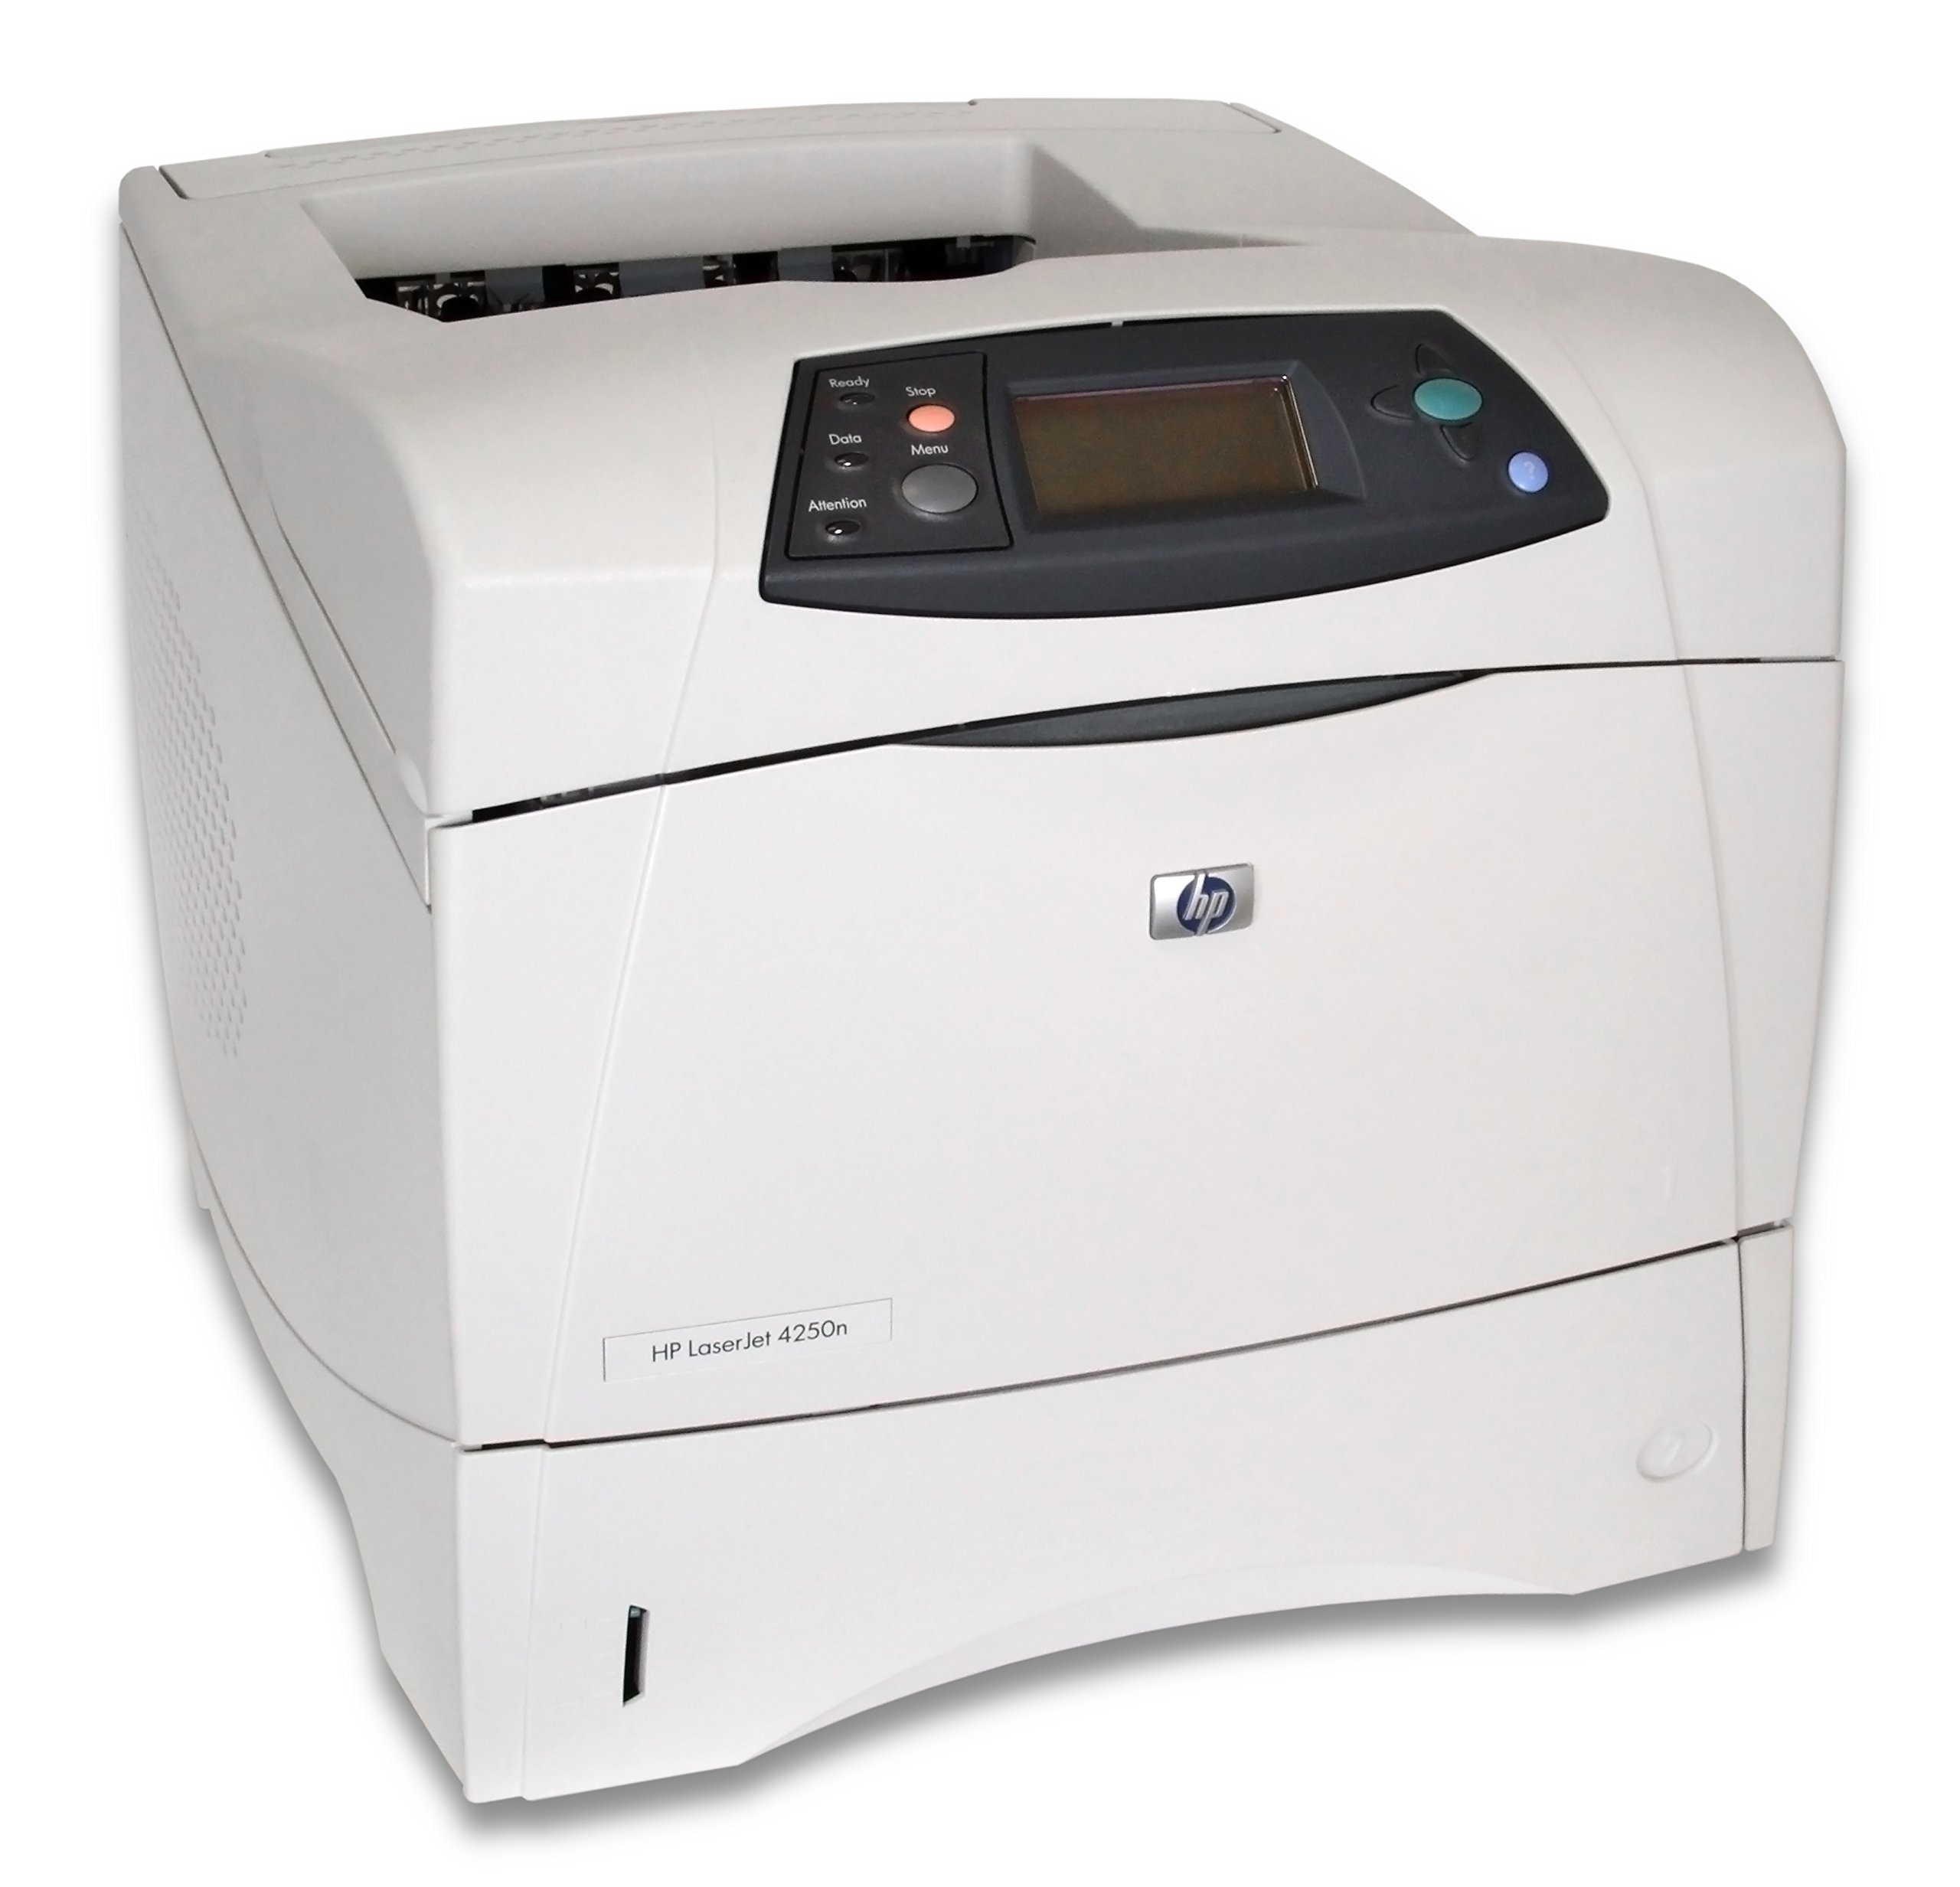 HP LaserJet 4250N Monochrome Network Printer by HP